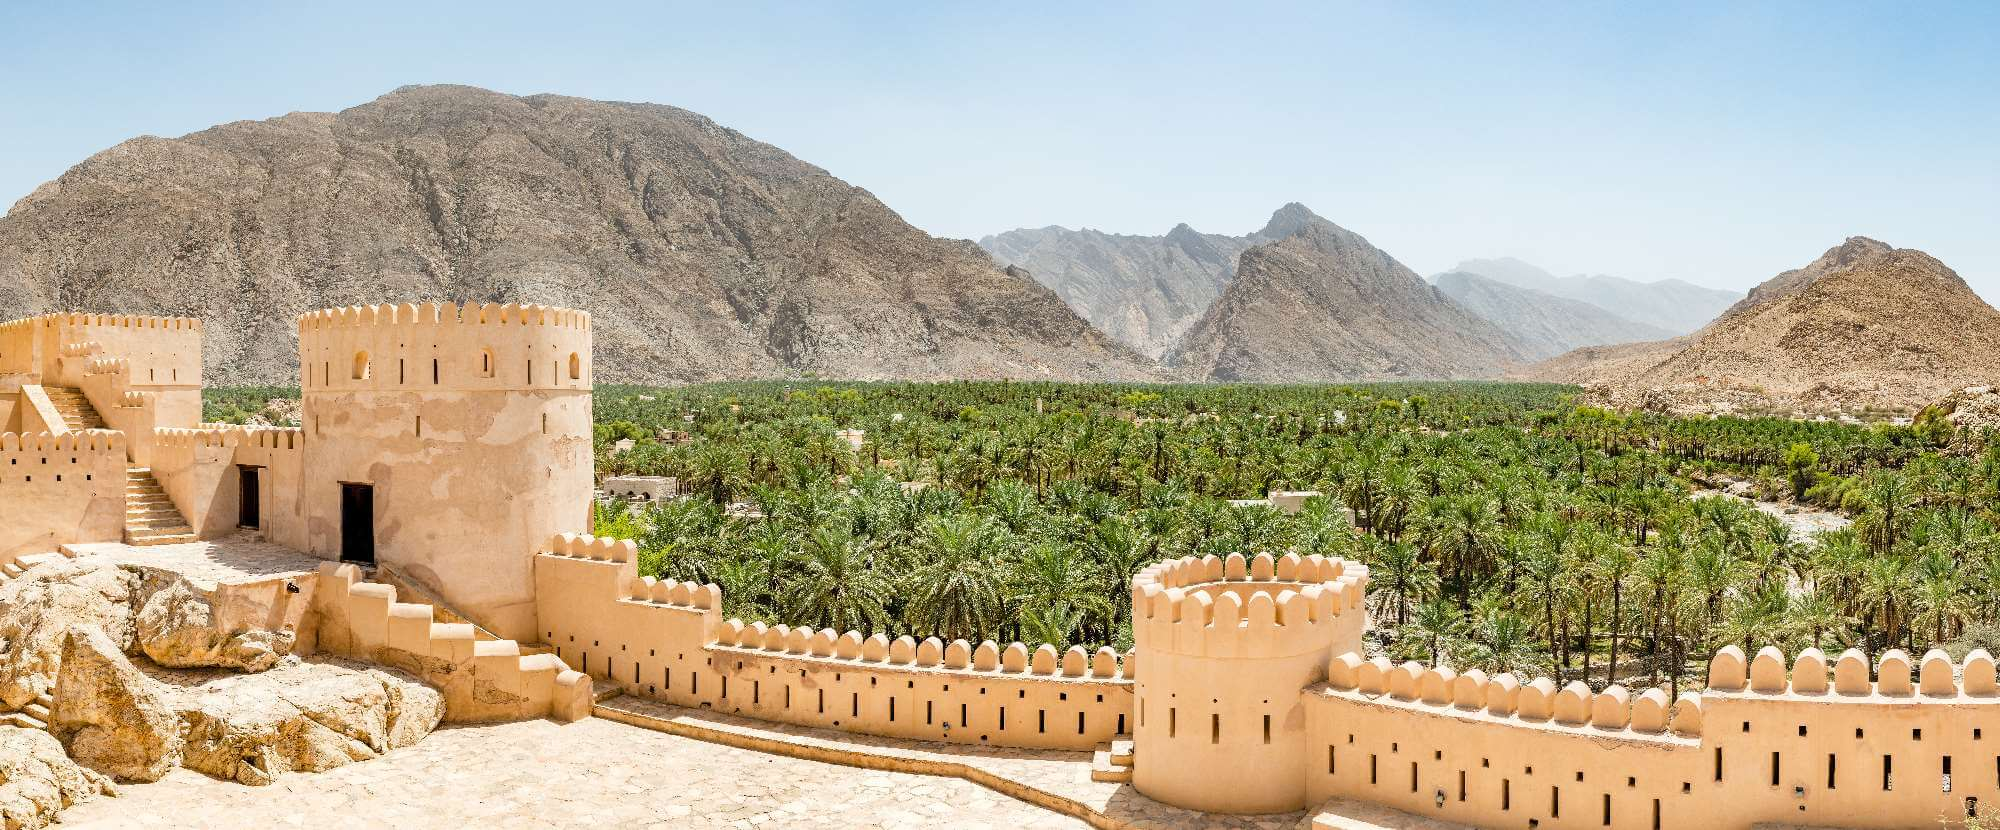 13 Incredible Landmarks in Oman You Don't Want to Miss